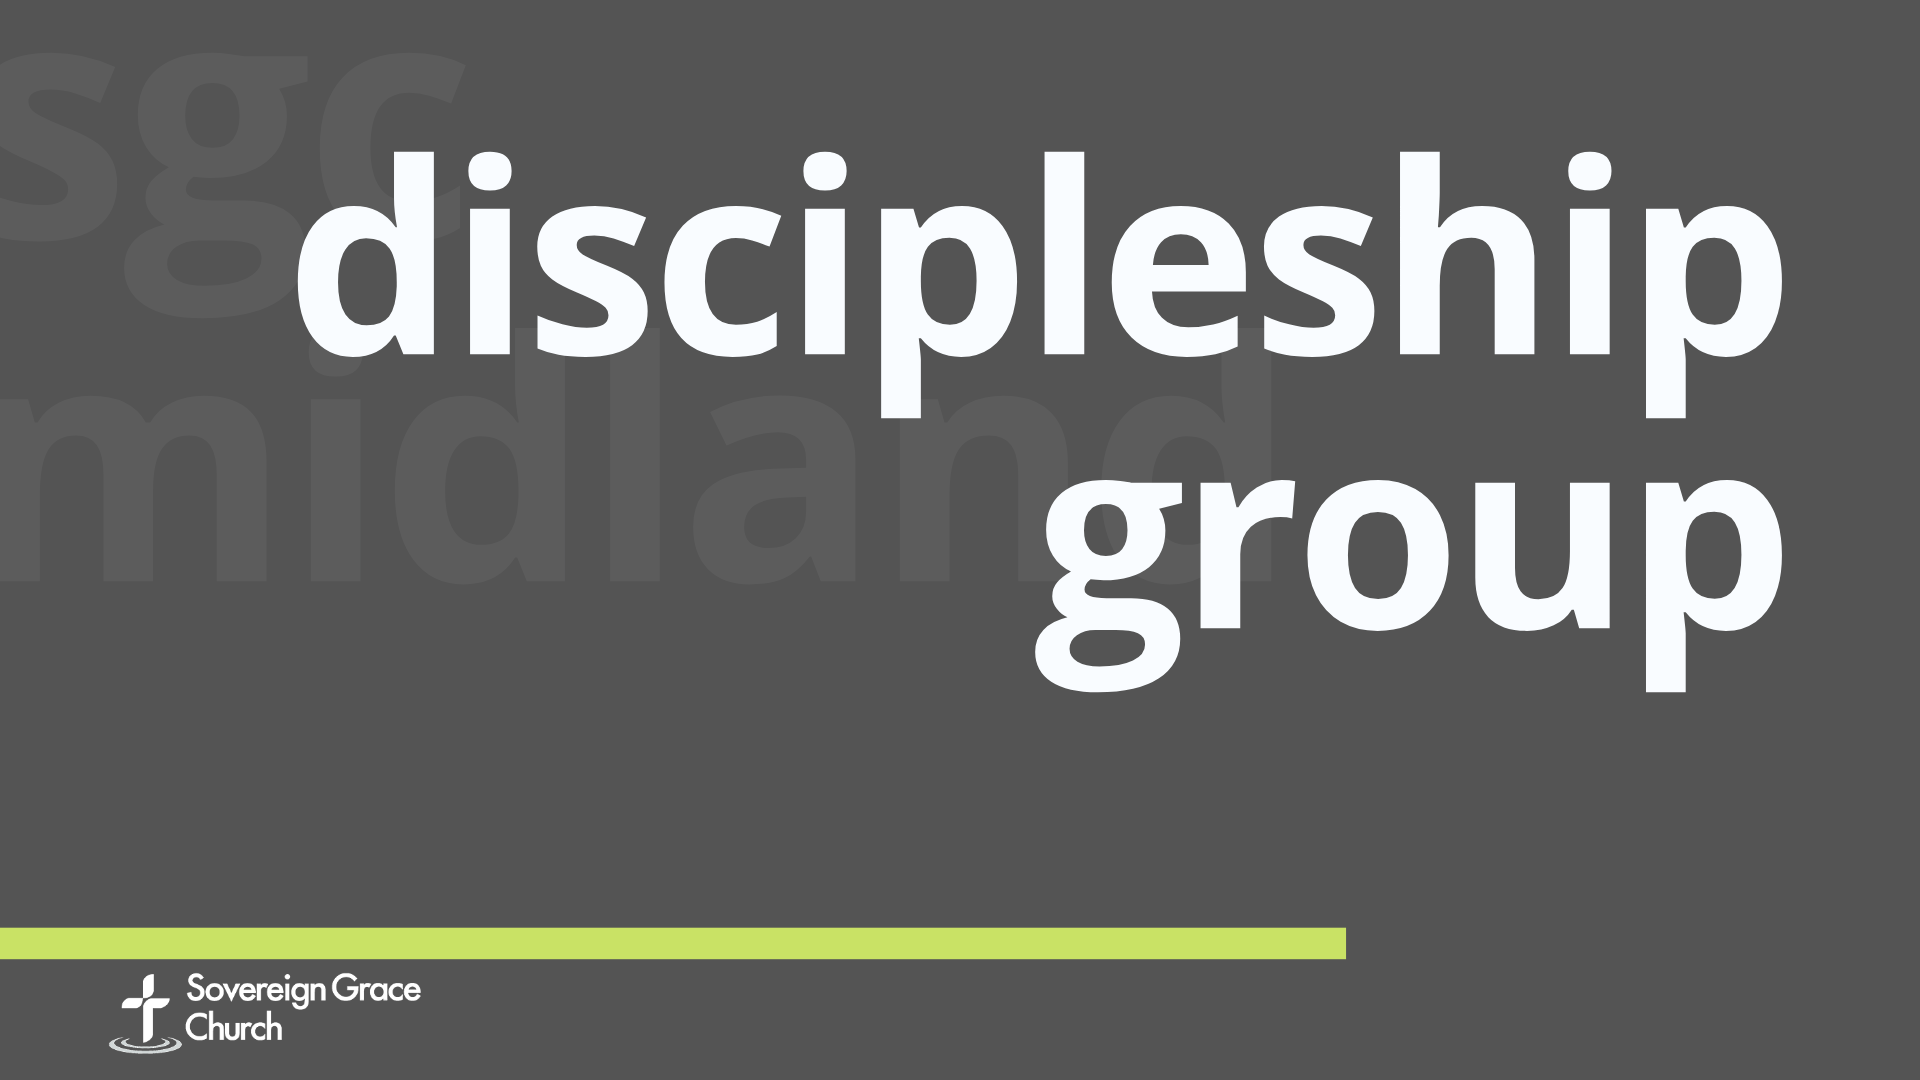 discipleship group image